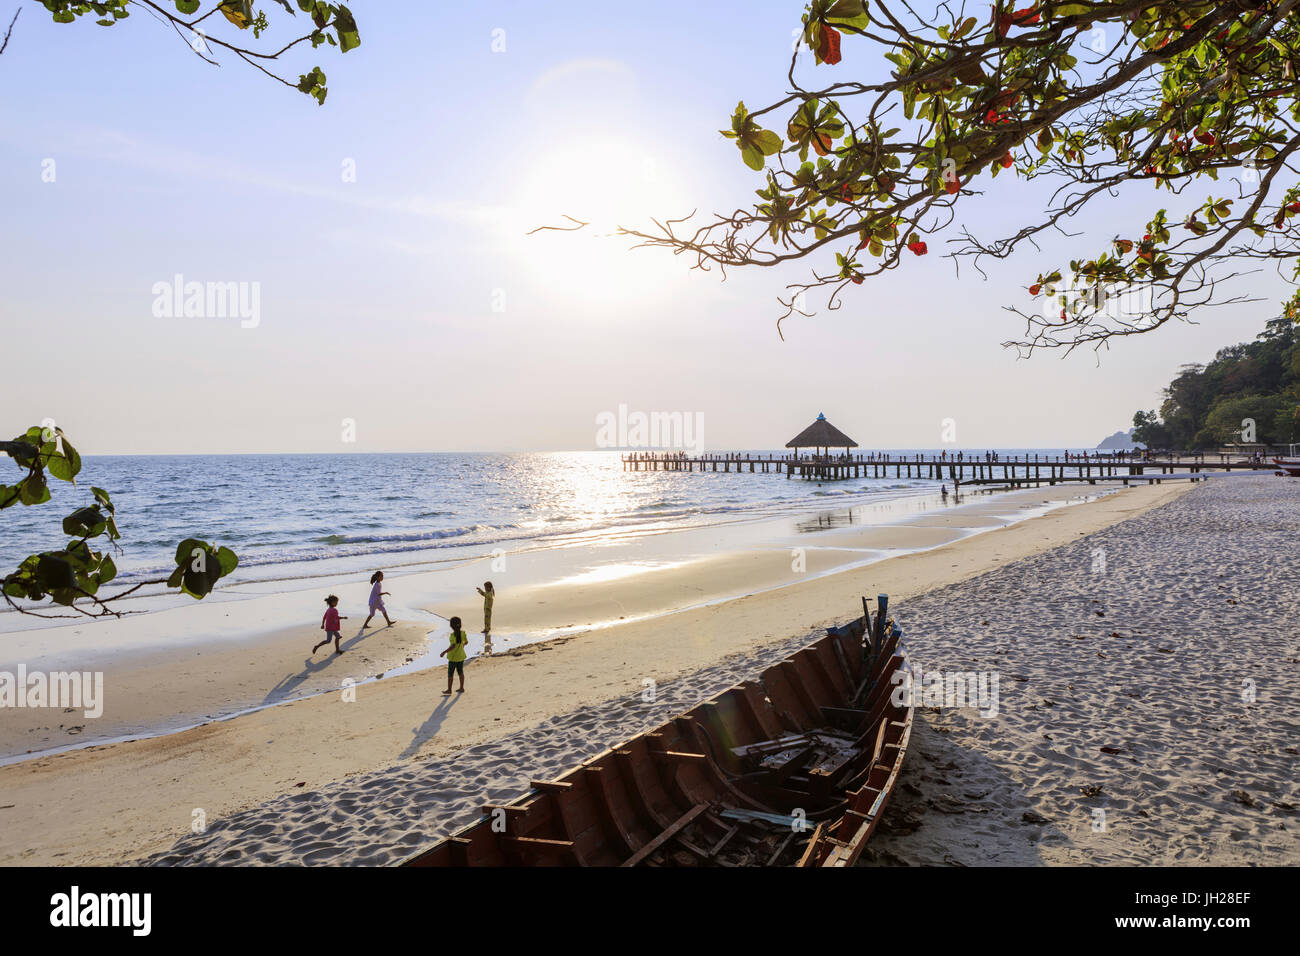 City beach and pier, Sihanoukville, Cambodia, Indochina, Southeast Asia, Asia - Stock Image